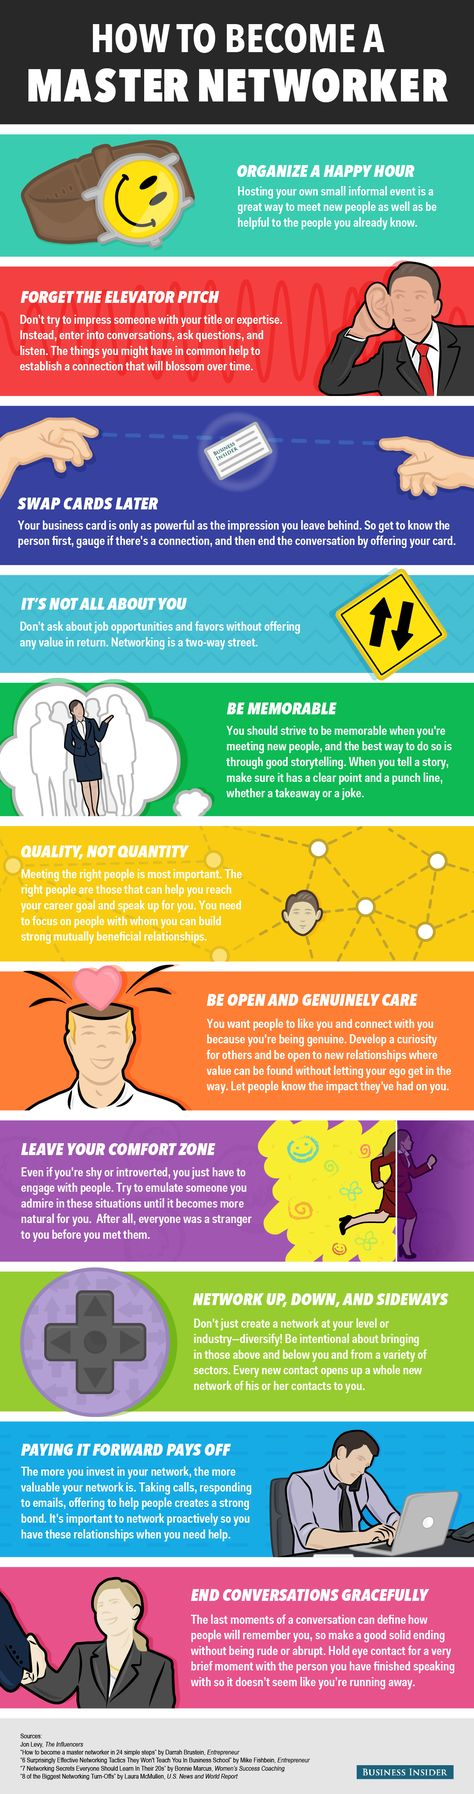 11 Tips To Ace Real Estate Networking Events [INFOGRAPHIC]